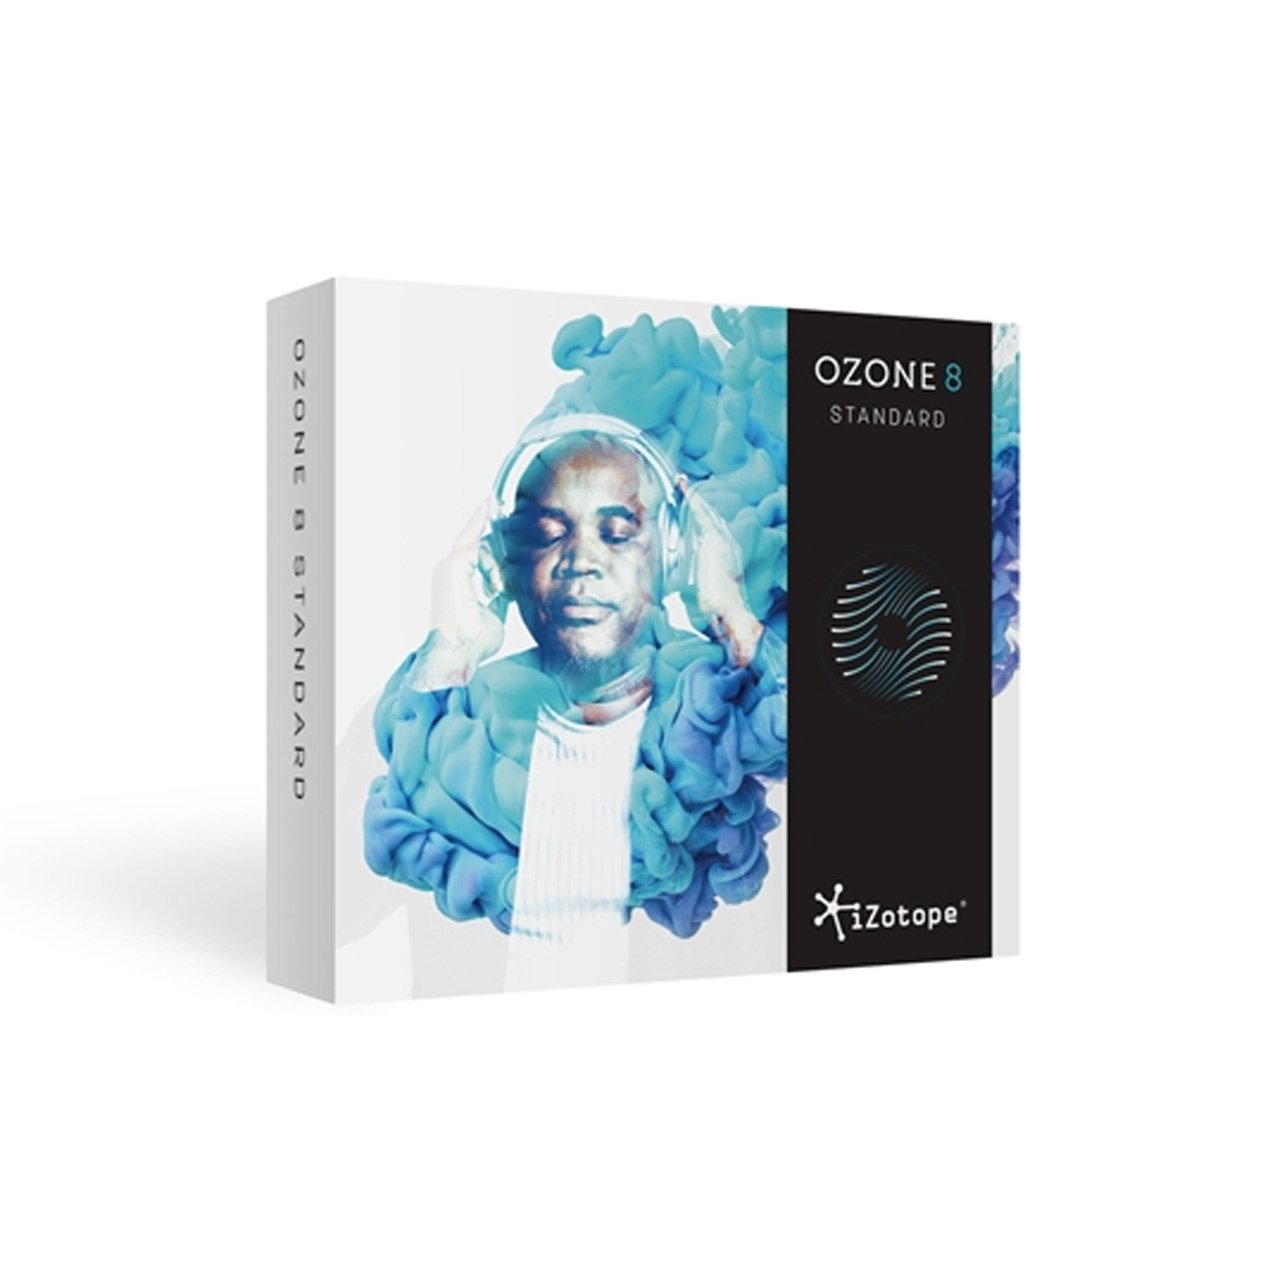 Plug-in Effects - IZotope Ozone 8 STANDARD Mastering Software